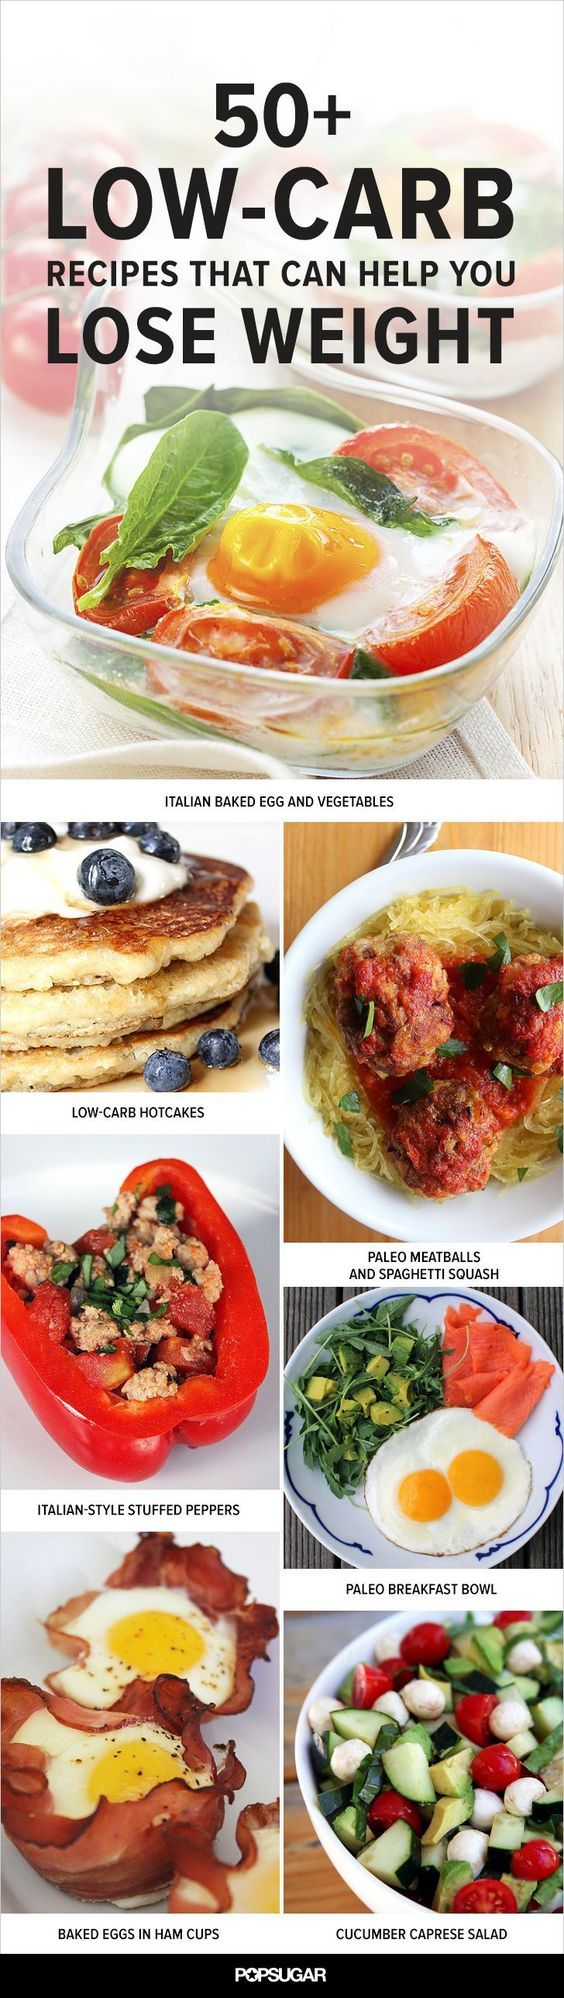 f you're looking to shed pounds, cutting back on carbs can be an effective part of your weight-loss strategy. Most low-carb plans recommend eating between 50 and 150 grams of carbs per day, and all the following breakfast, lunch, dinner, and snack